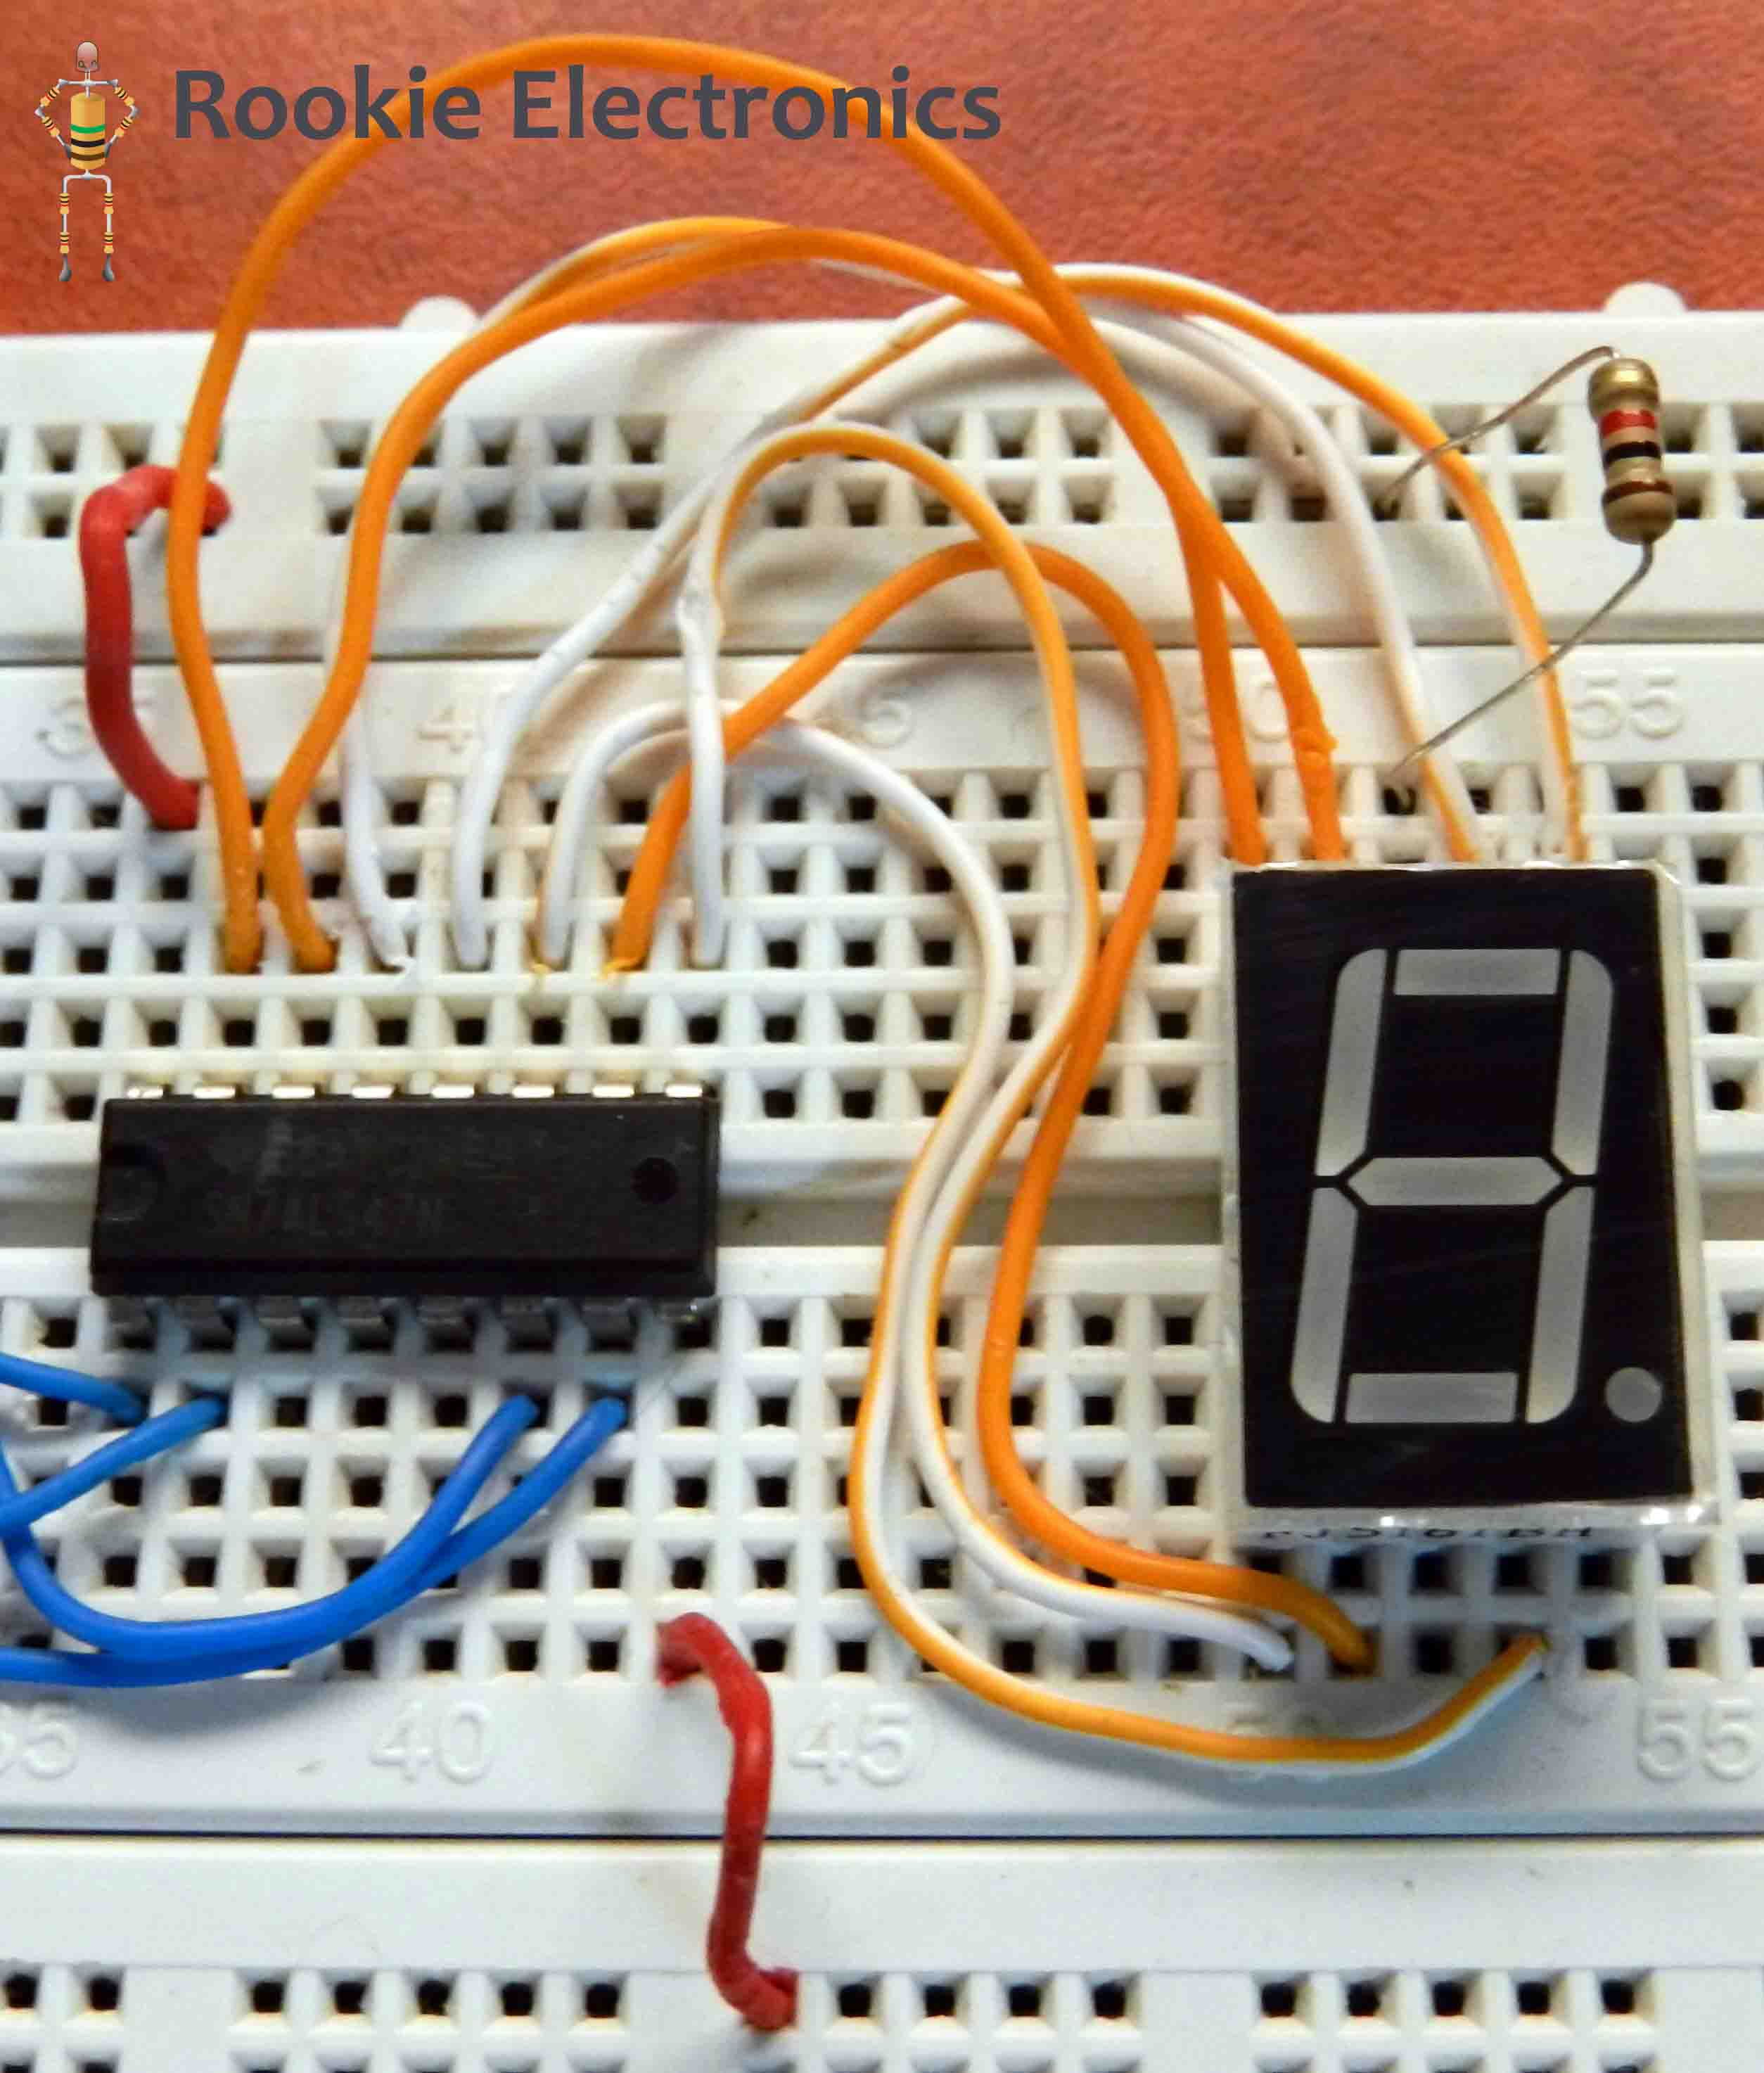 Seven Segment Display Using 555 Timer 74ls90 Bcd Decade Counter